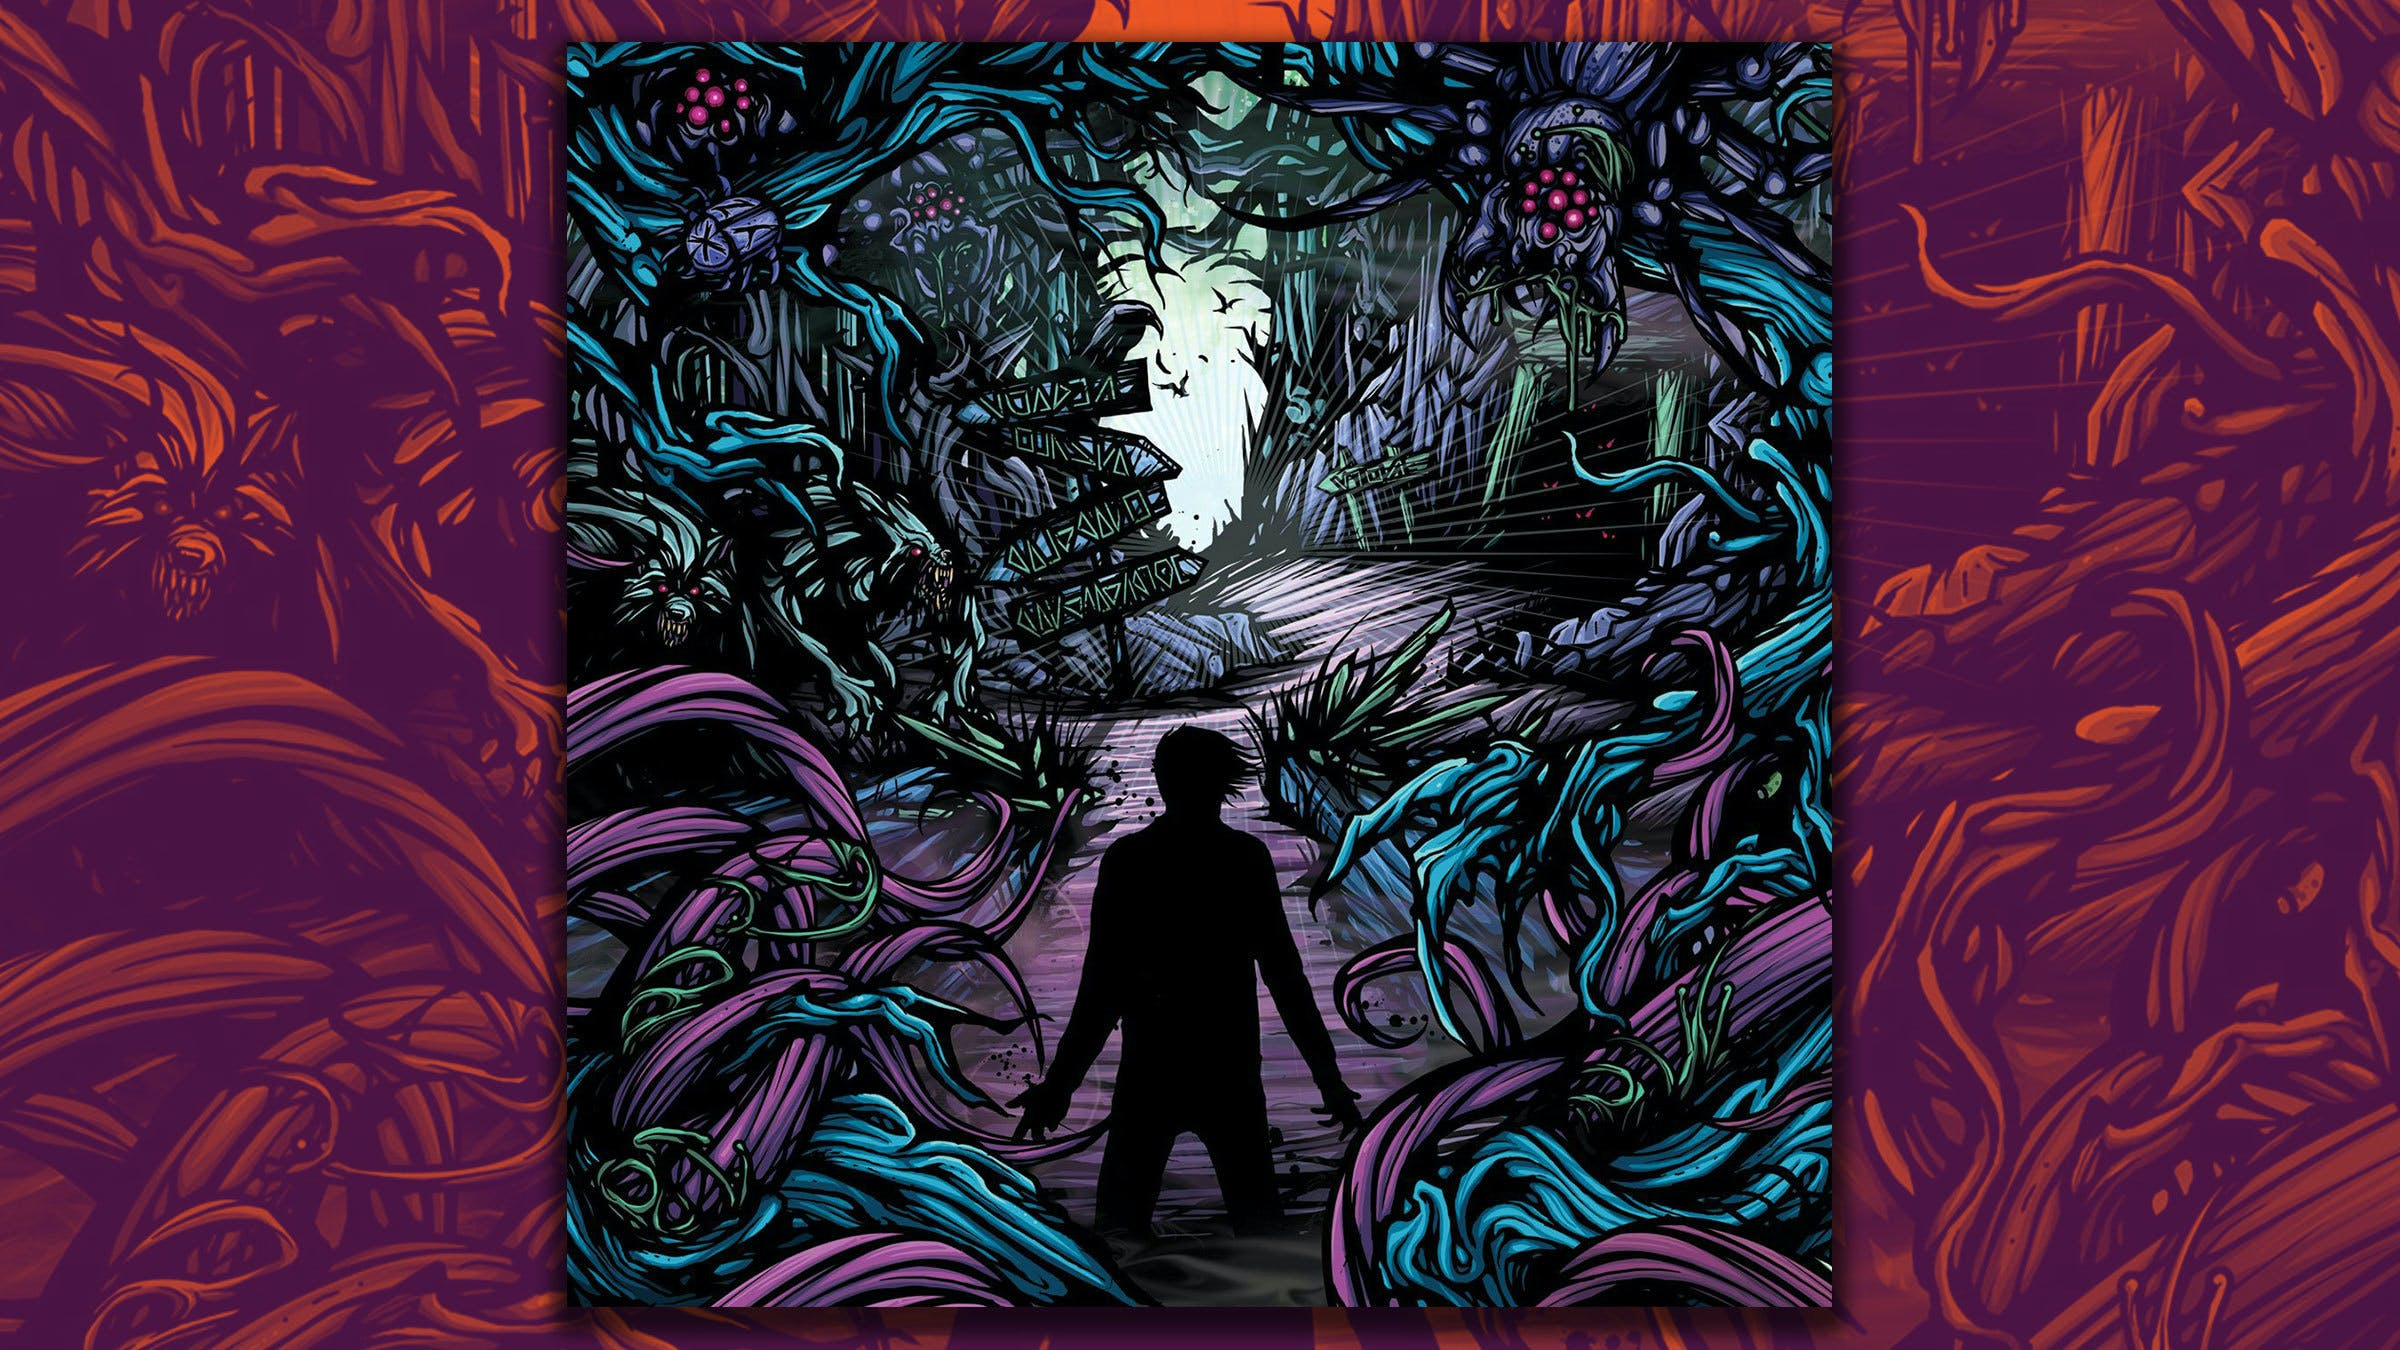 A Day To Remember's Homesick Changed Pop-Punk And Metal Forever